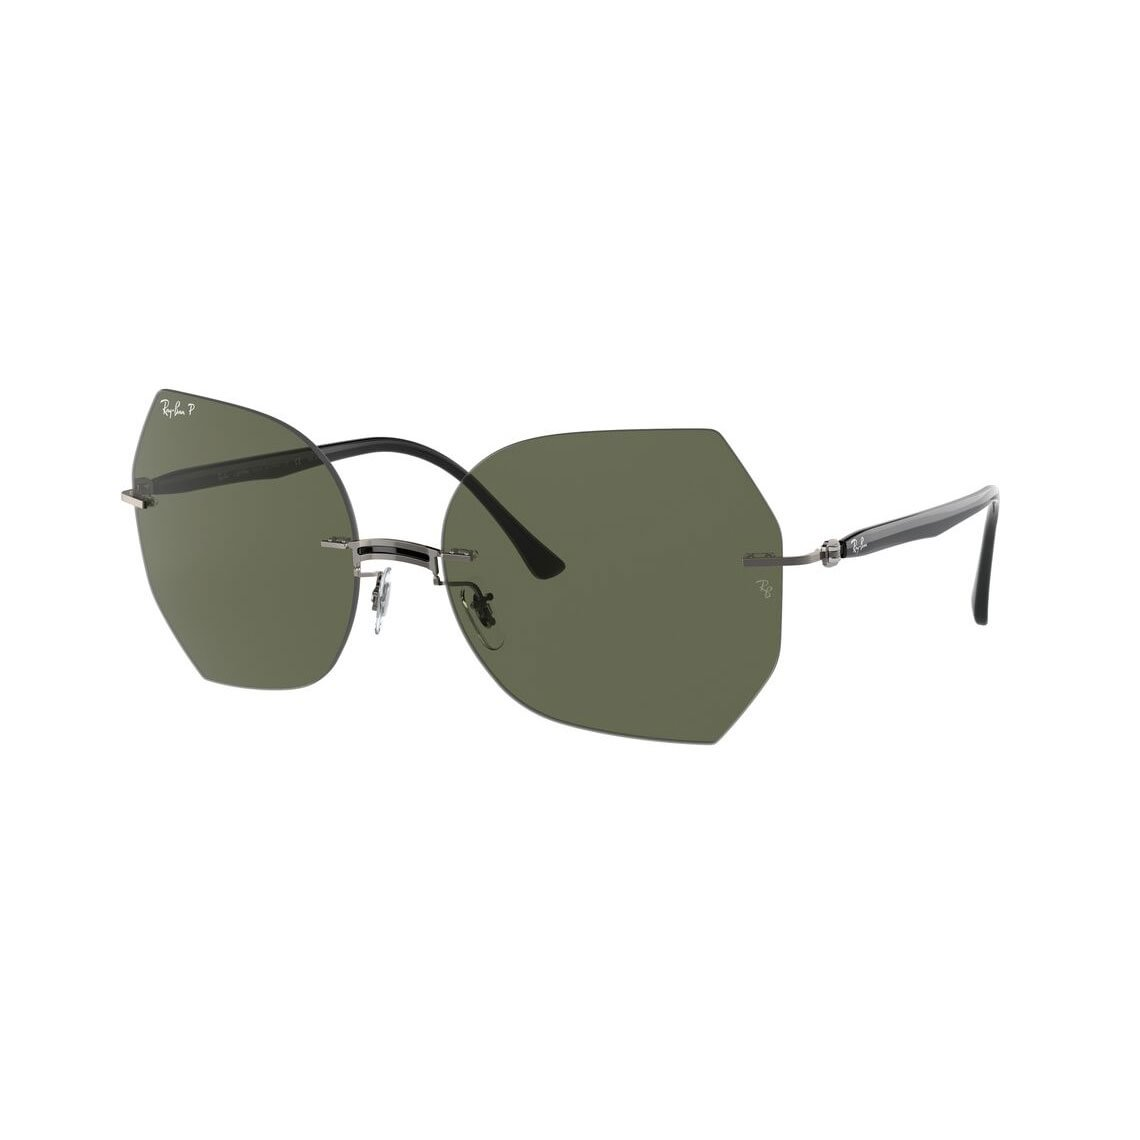 Ray-Ban RB8065 004/9A 6218